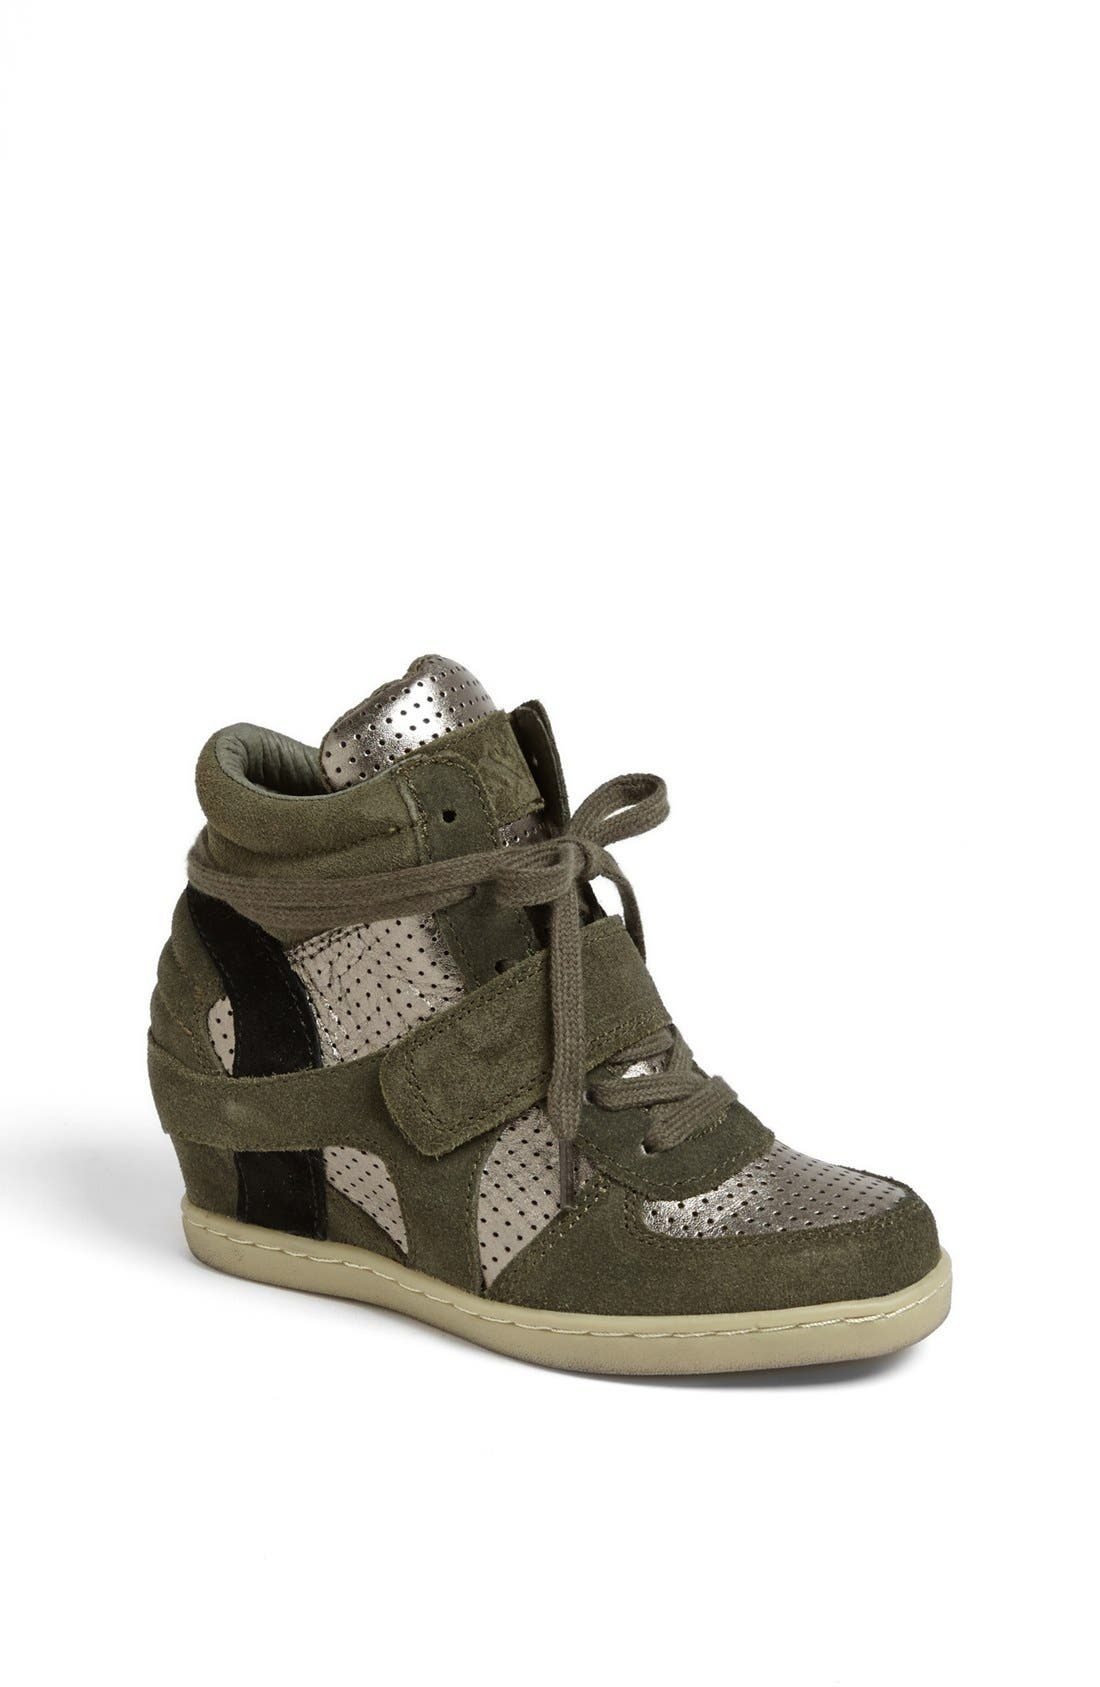 Main Image - Ash 'Babe' Hidden Wedge Sneaker (Toddler, Little Kid & Big Kid)